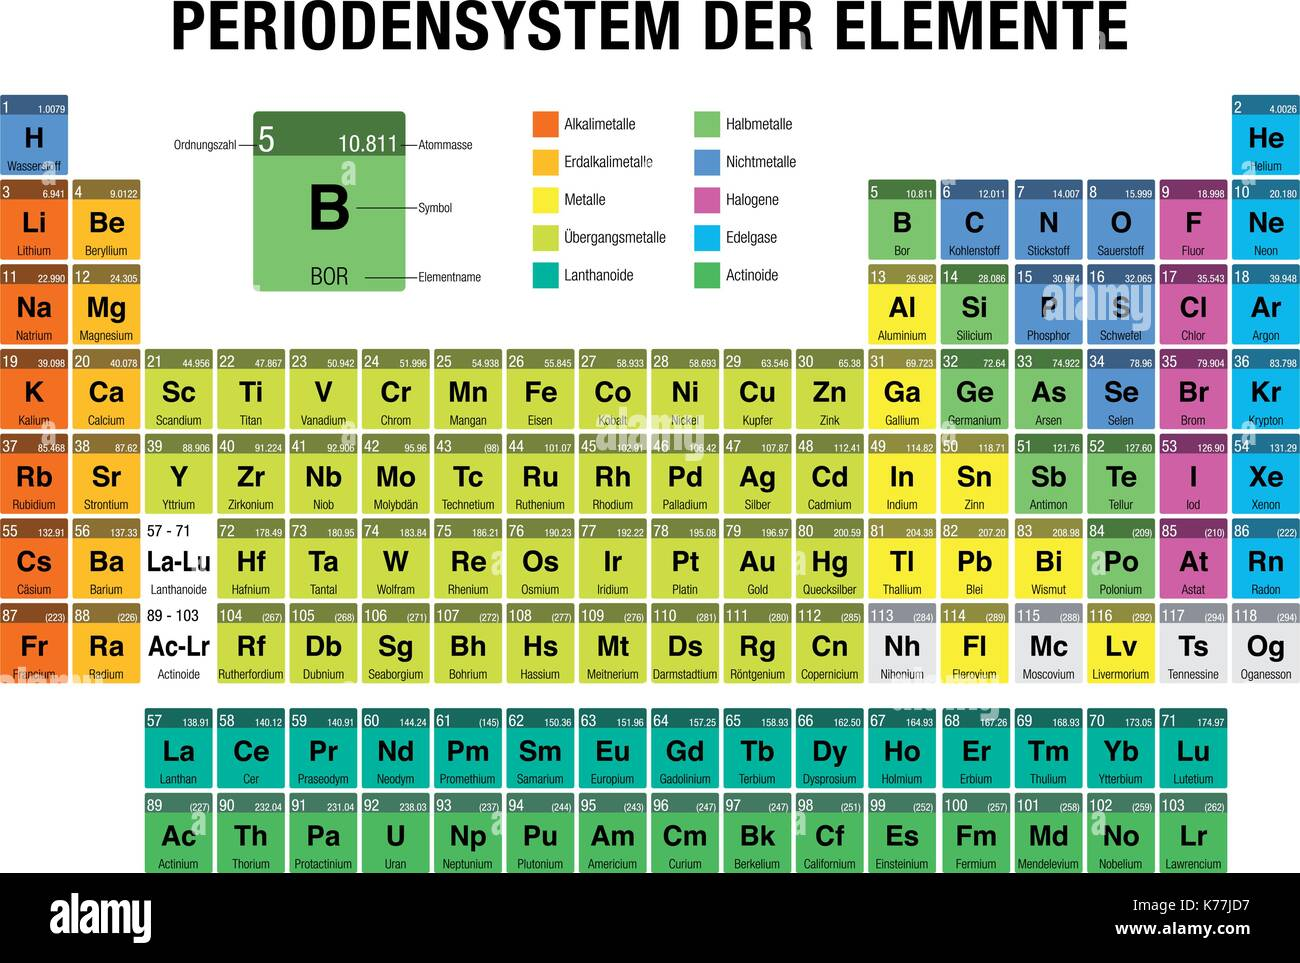 Diagram periodic table elements stock photos diagram periodic periodensystem der elemente periodic table of elements in german language on white background with gamestrikefo Choice Image